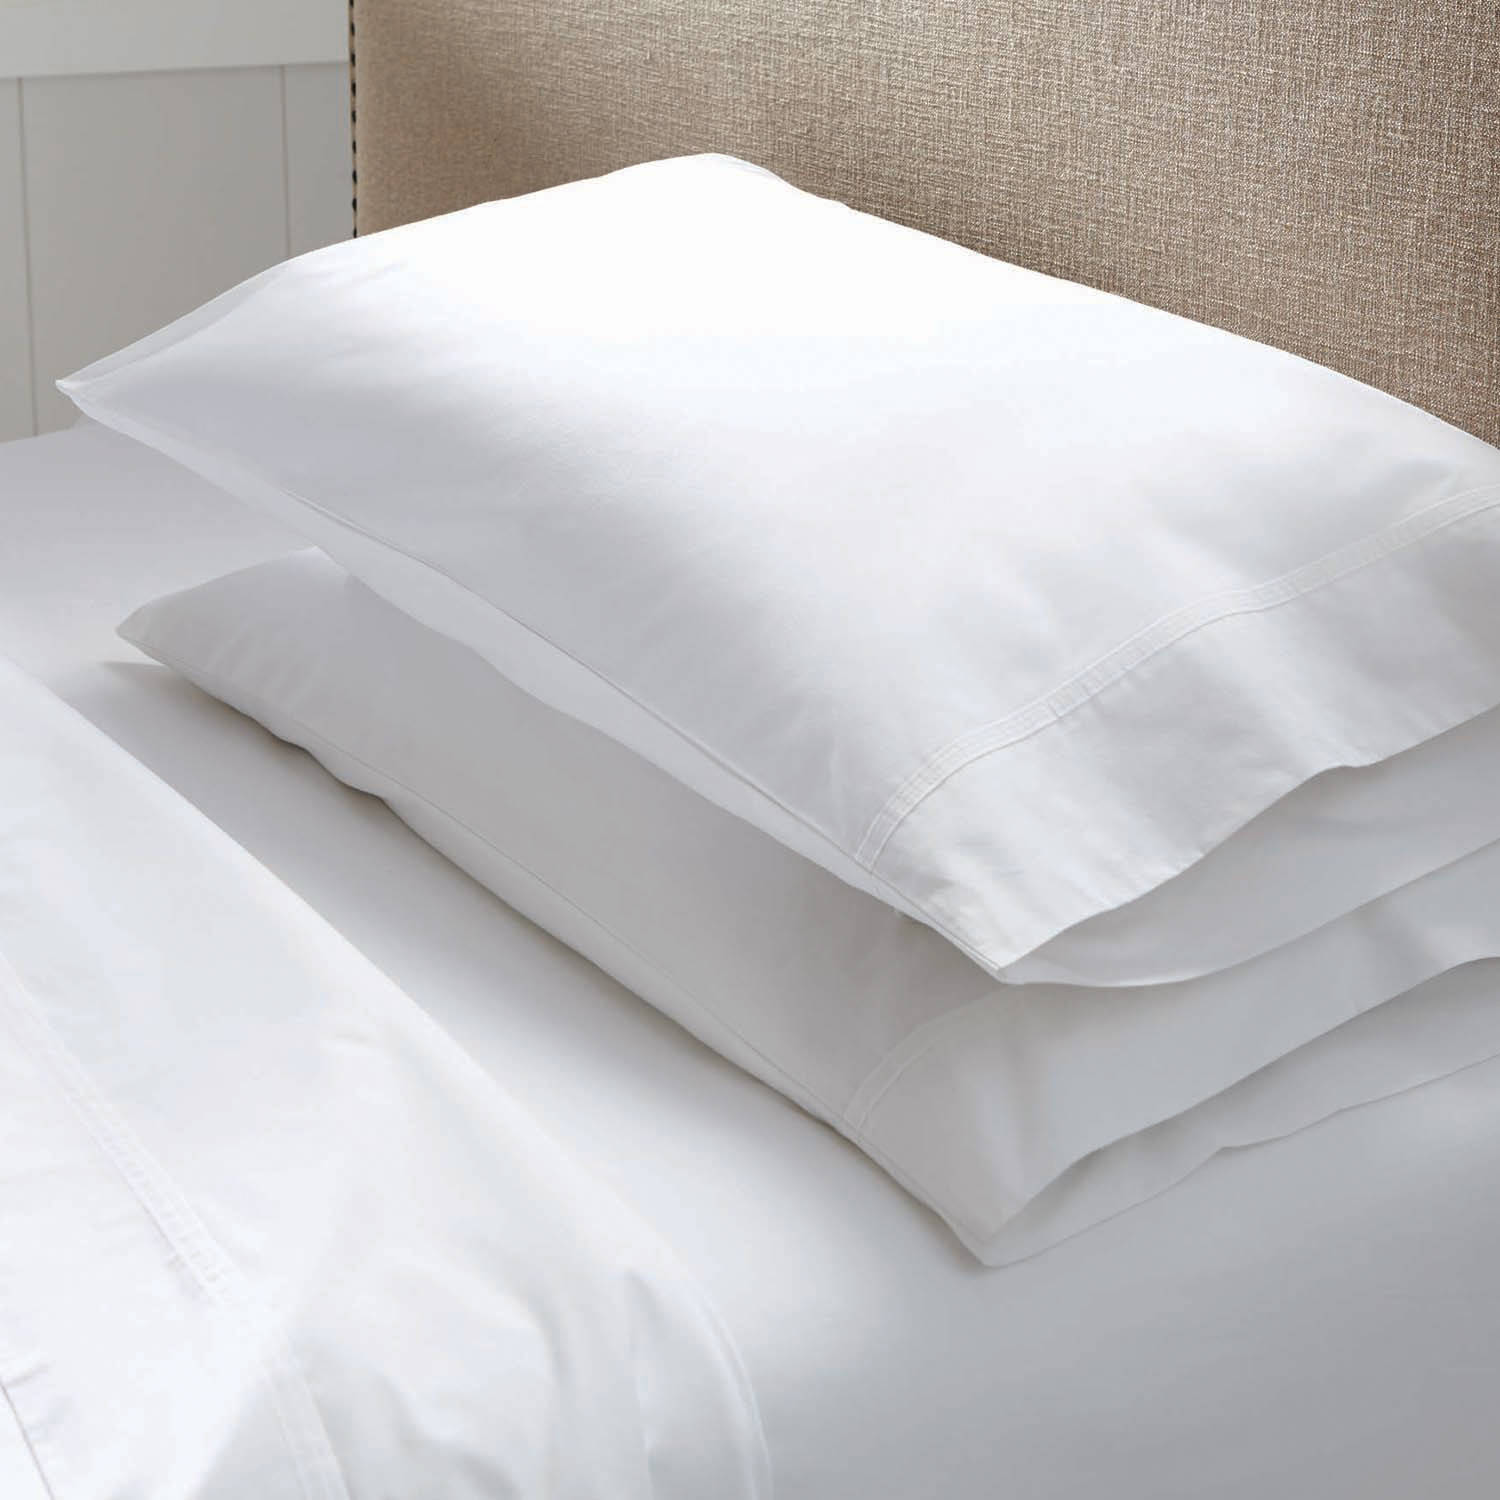 amusing percale sheet sets alluring percale sheet sets adorable percale sheet sets